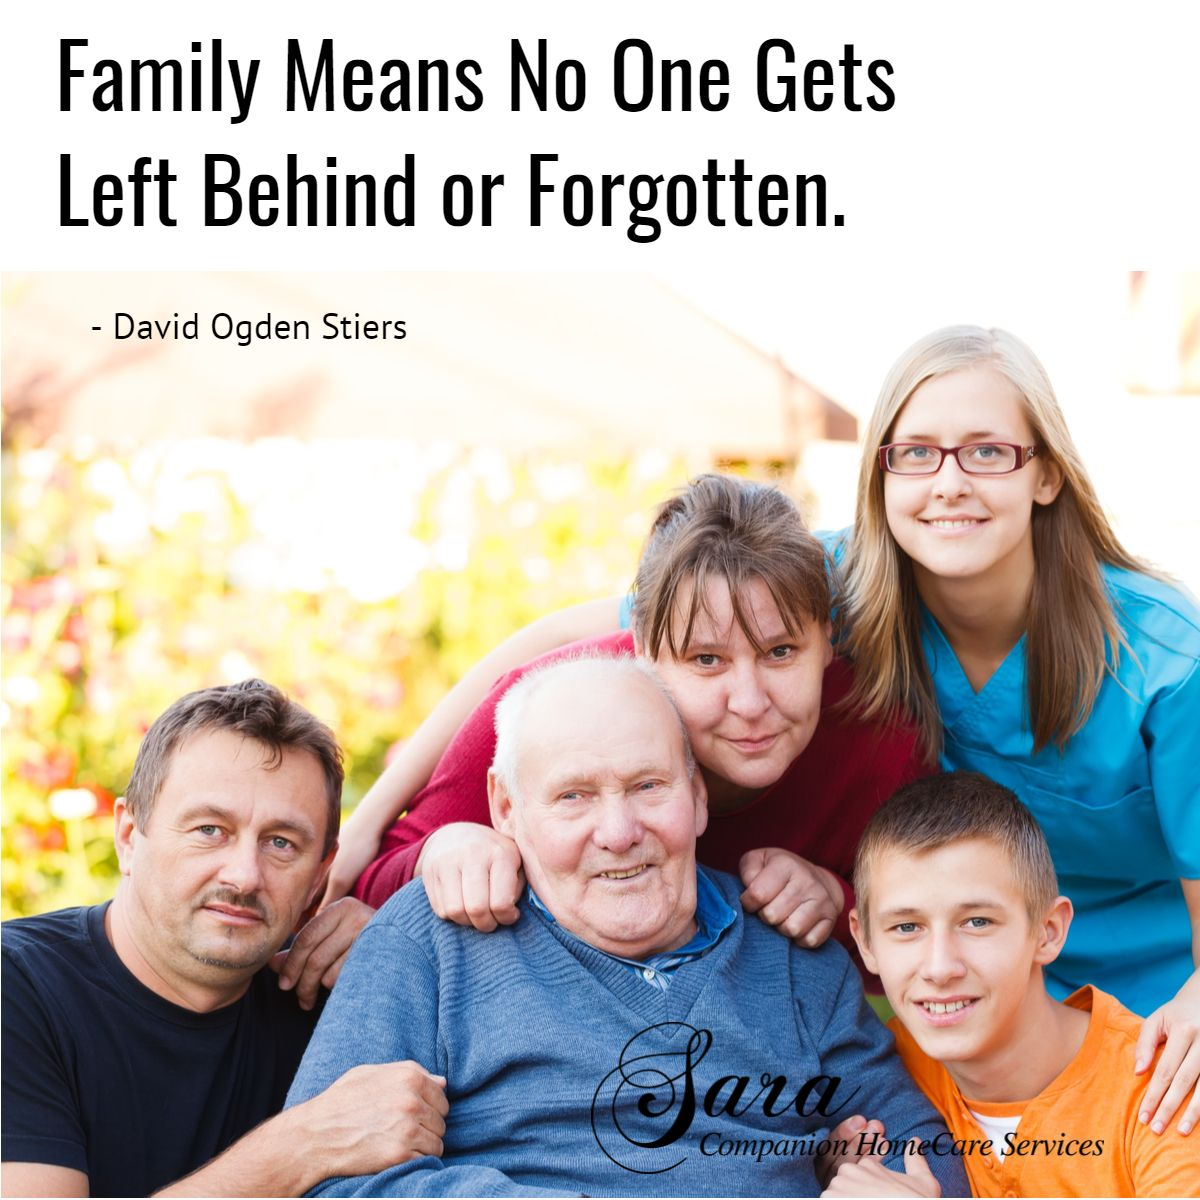 Family and friends make our lives special, so tet them